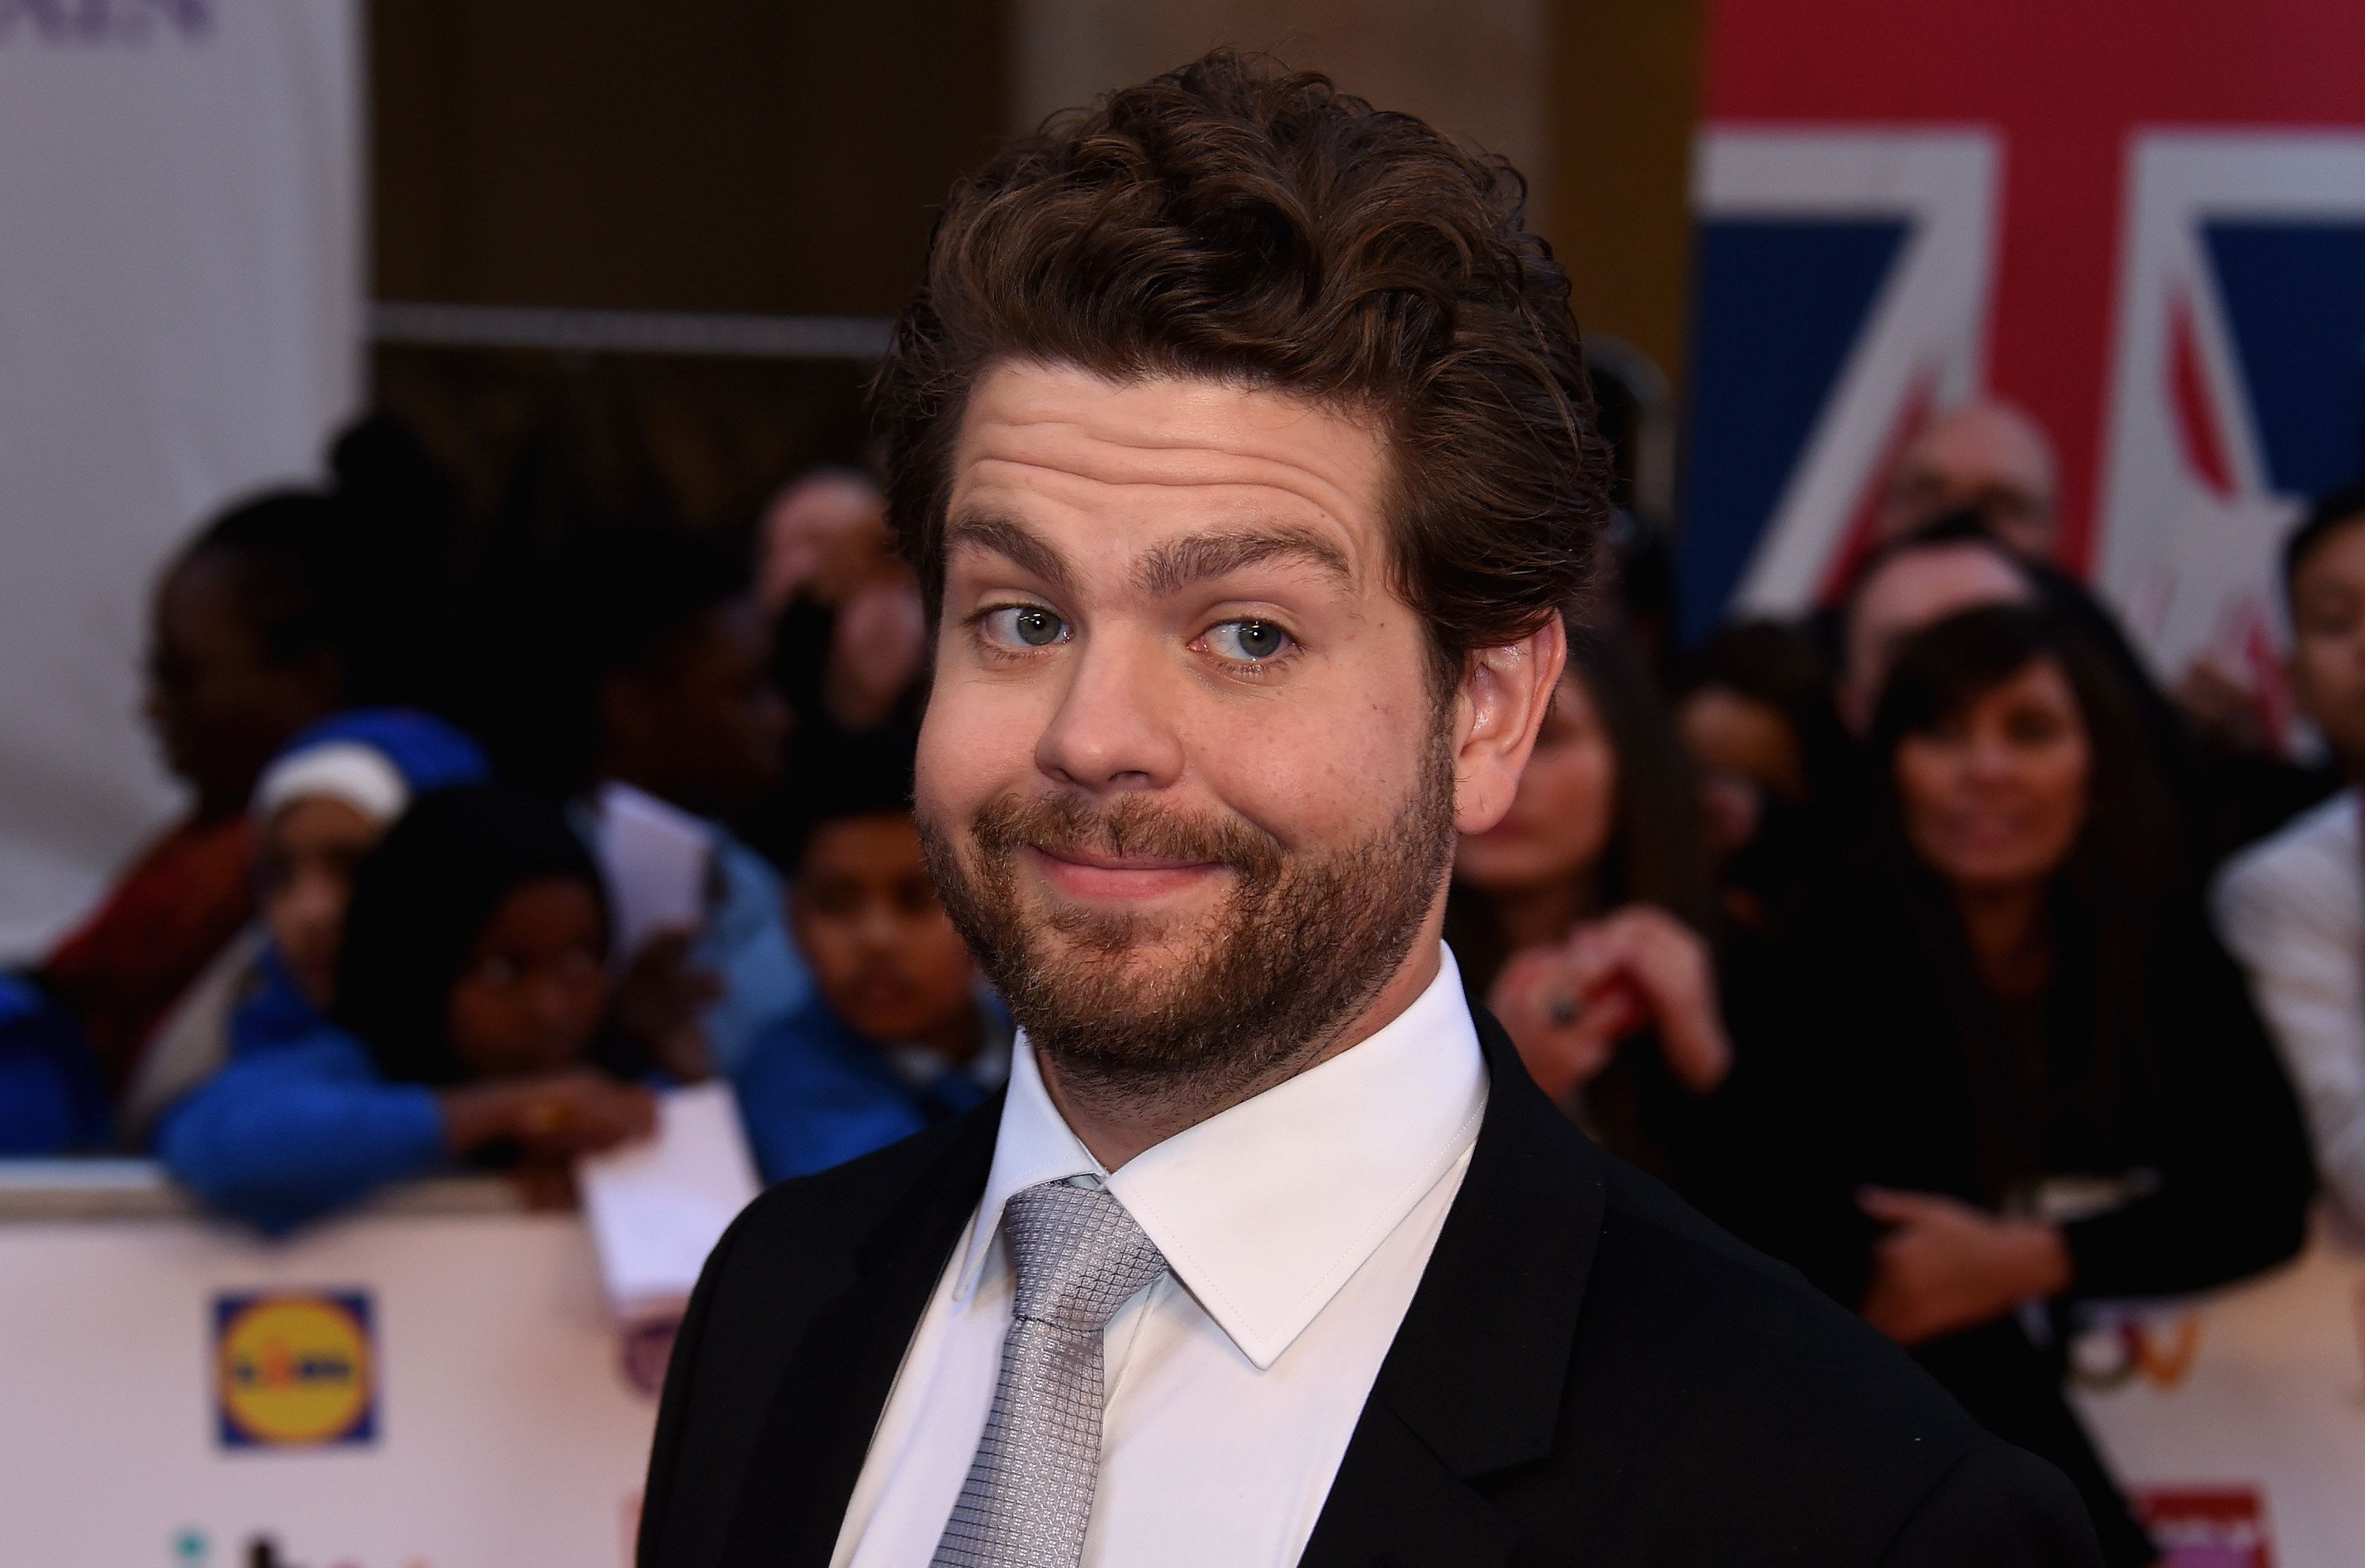 Jack Osbourne Pens Open Letter About Living With Multiple